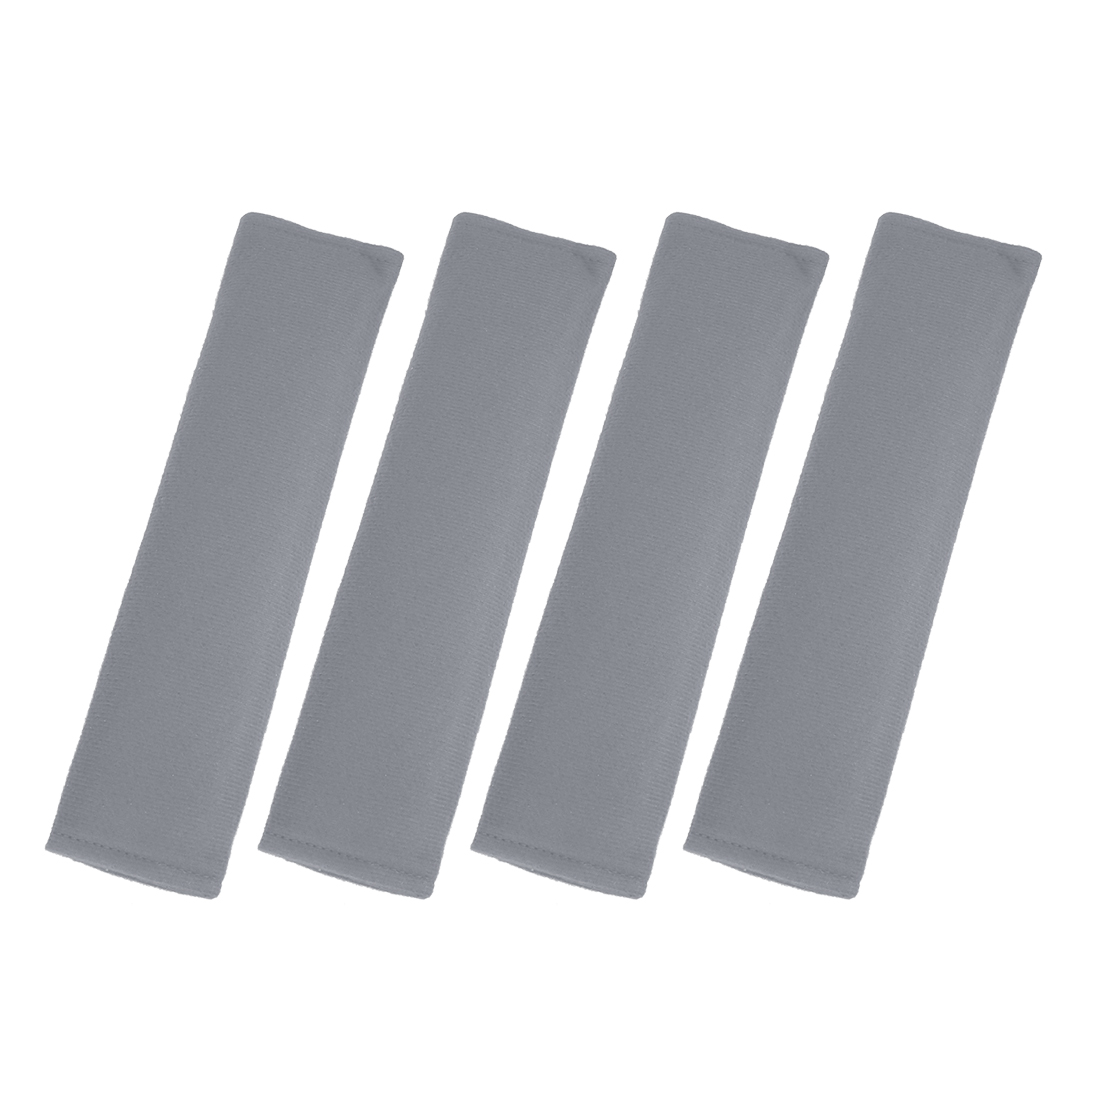 4pcs Universal Gray Seat Belt Cover Shoulder Pad Strap Protector for Car Truck